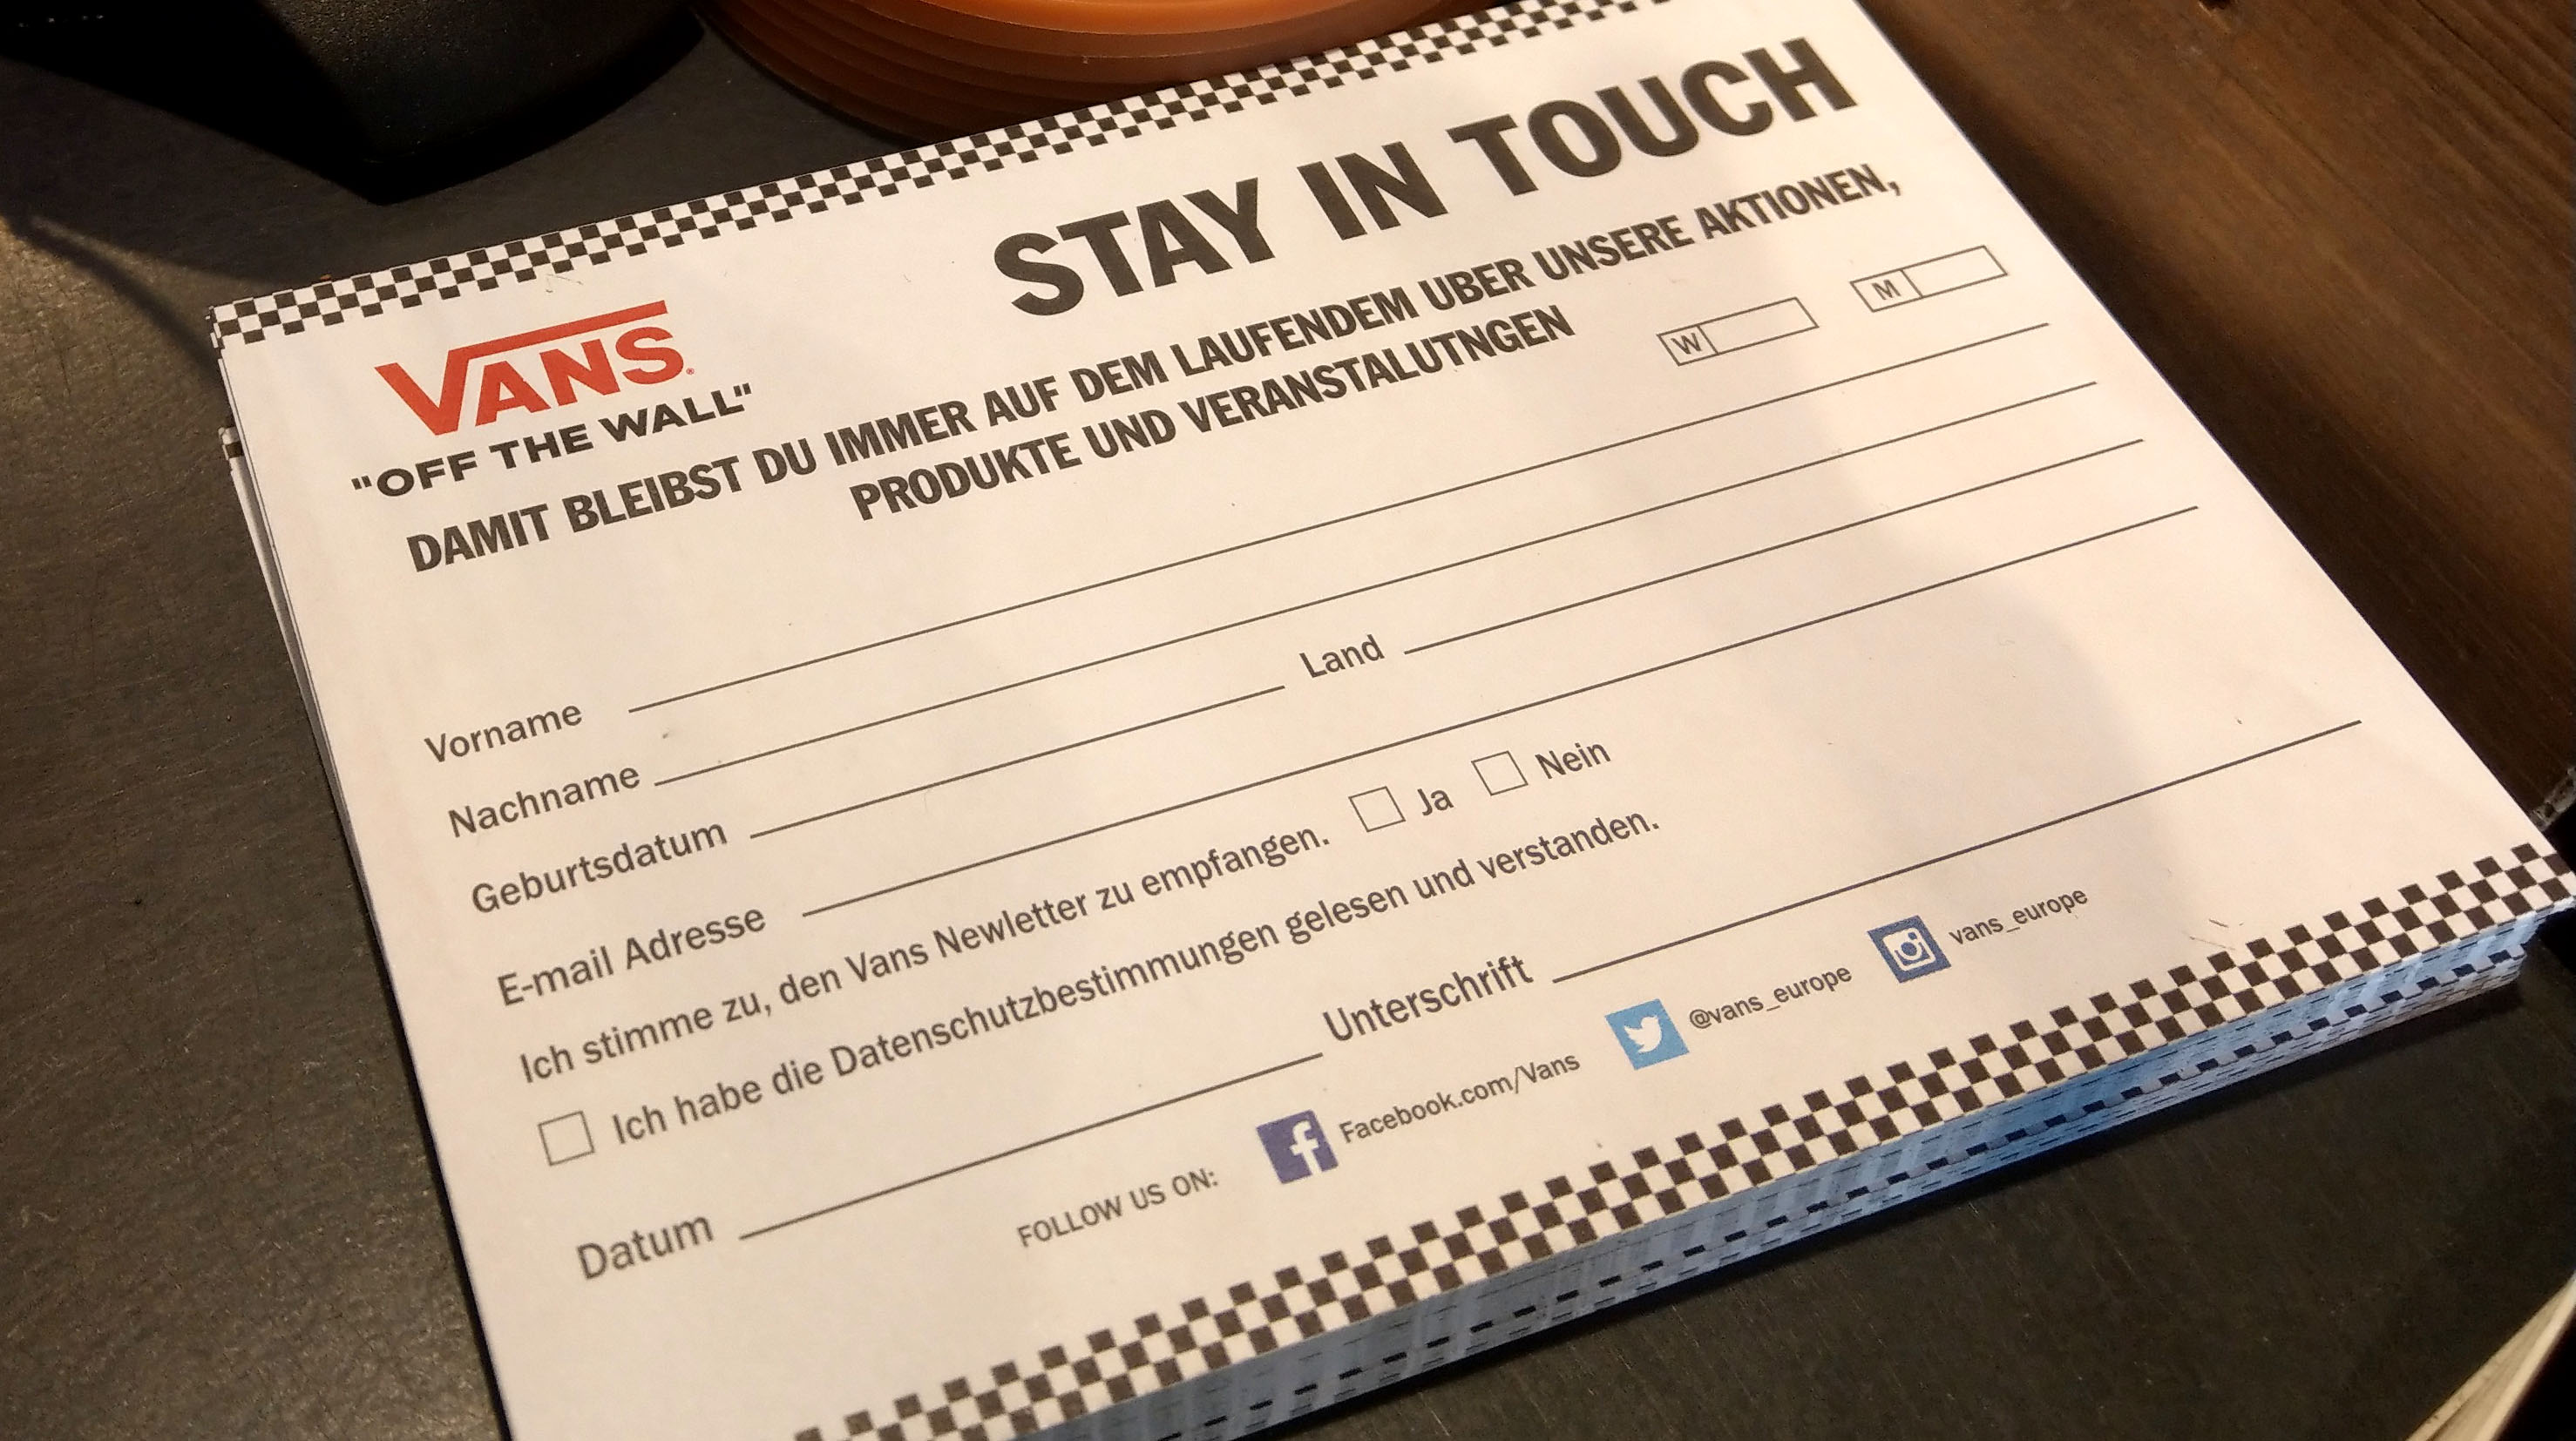 Example of a in-person signup form from VANS.